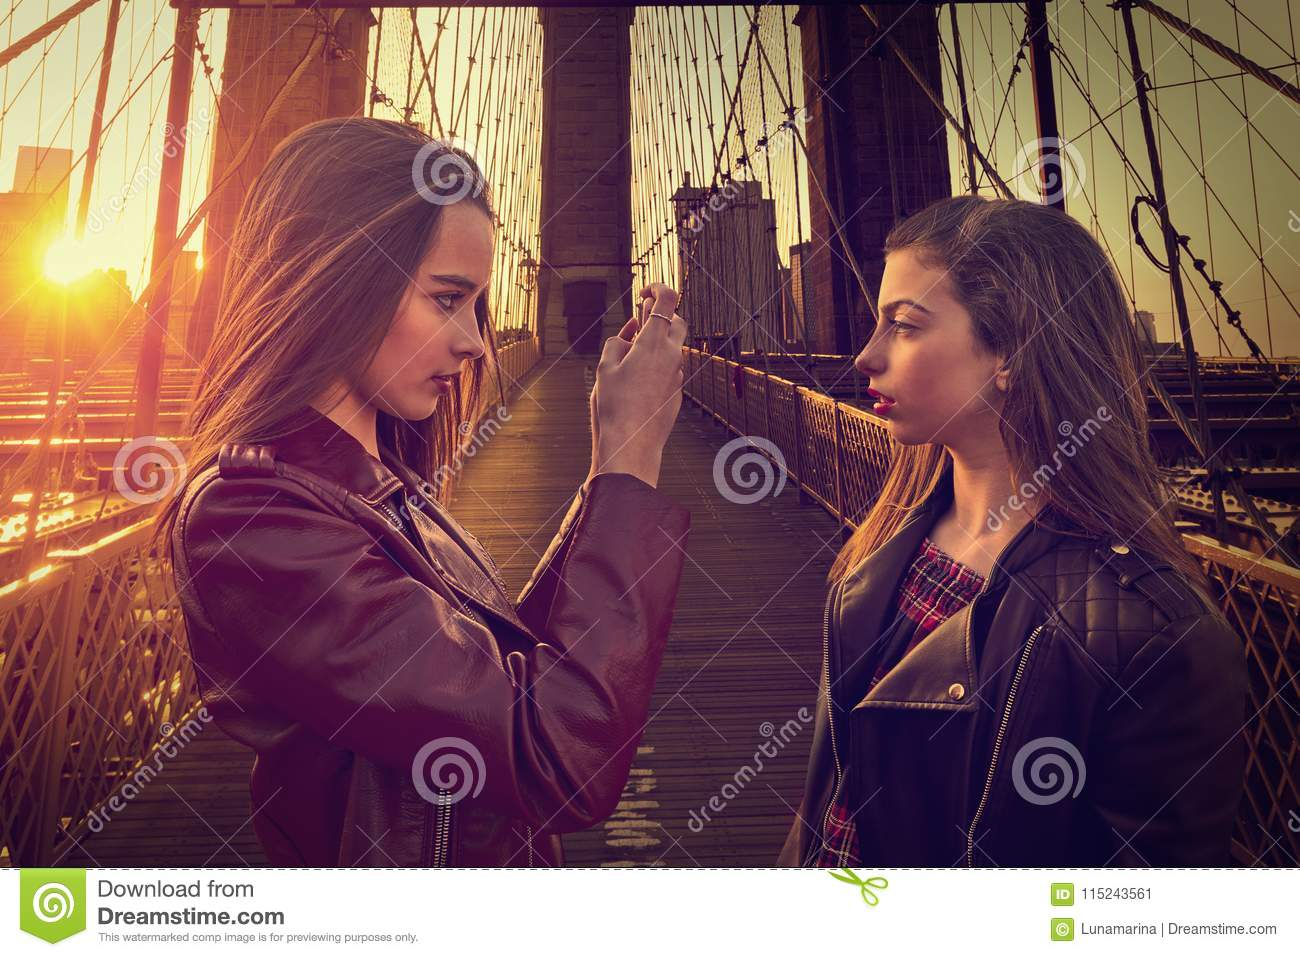 Teen tourist girls taking photo in Brooklyn bridge NY